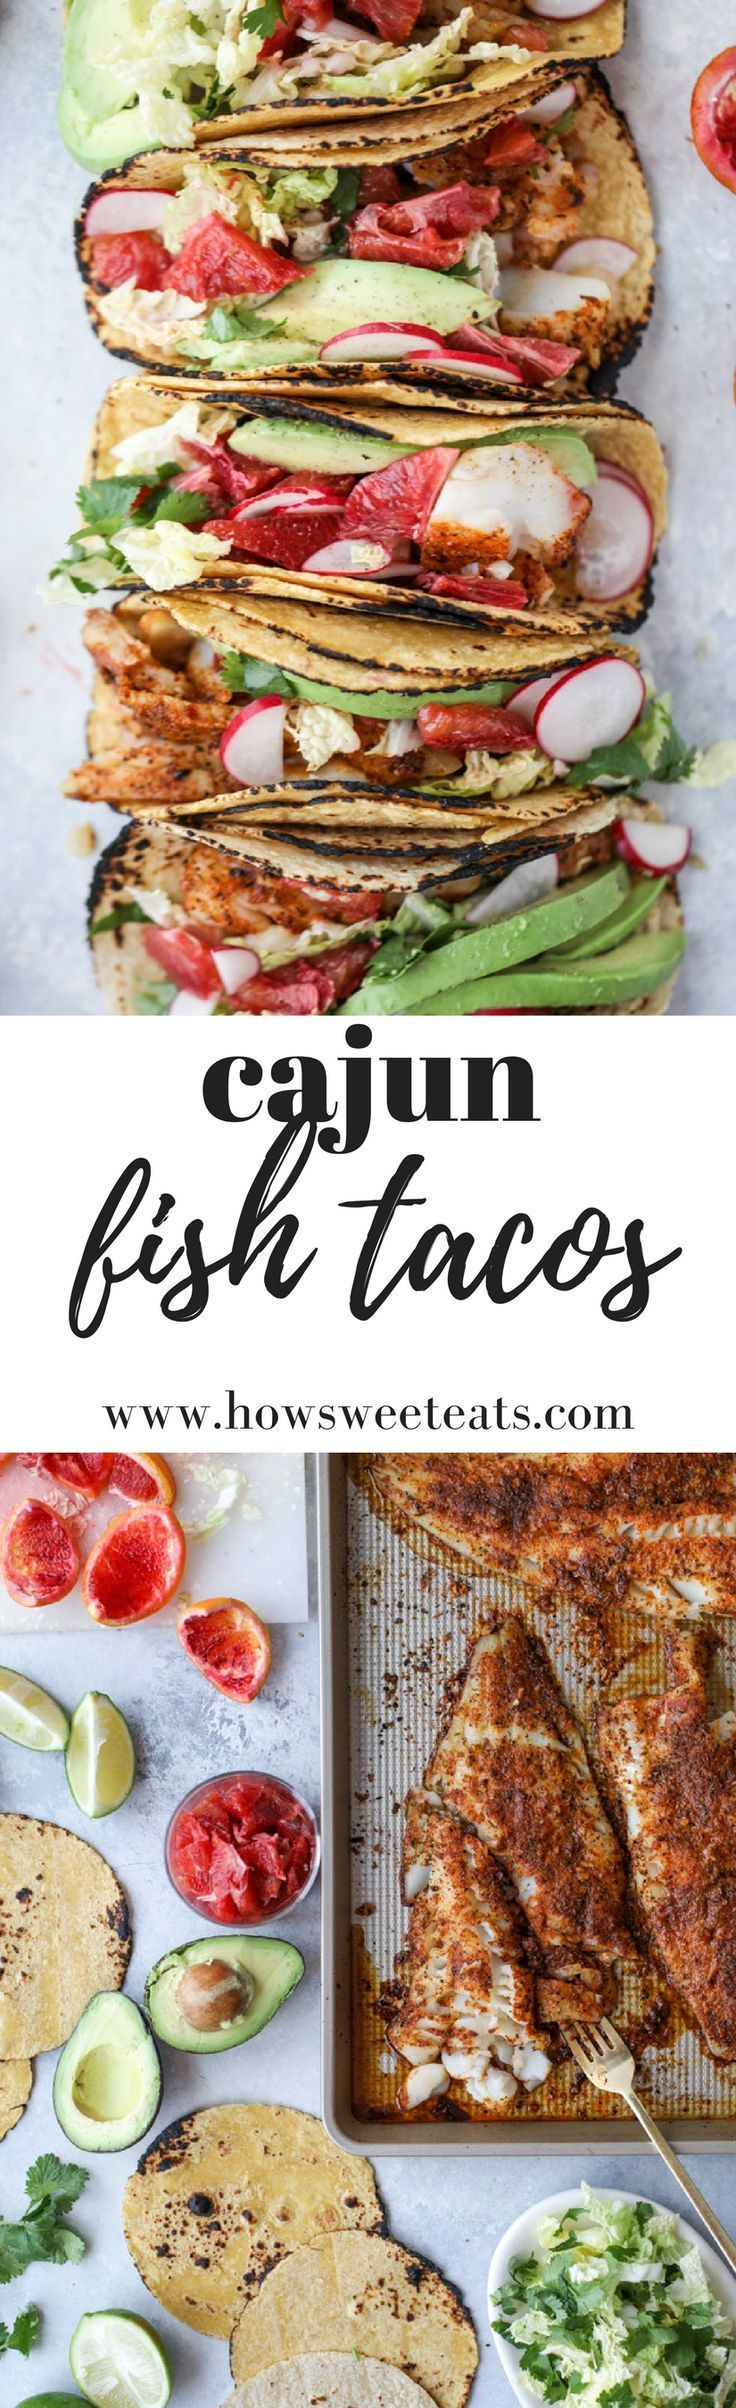 Easy Cajun Fish Tacos I www.howsweeteats.com #fishtacos #cajun #fish #healthy #recipes #tacos